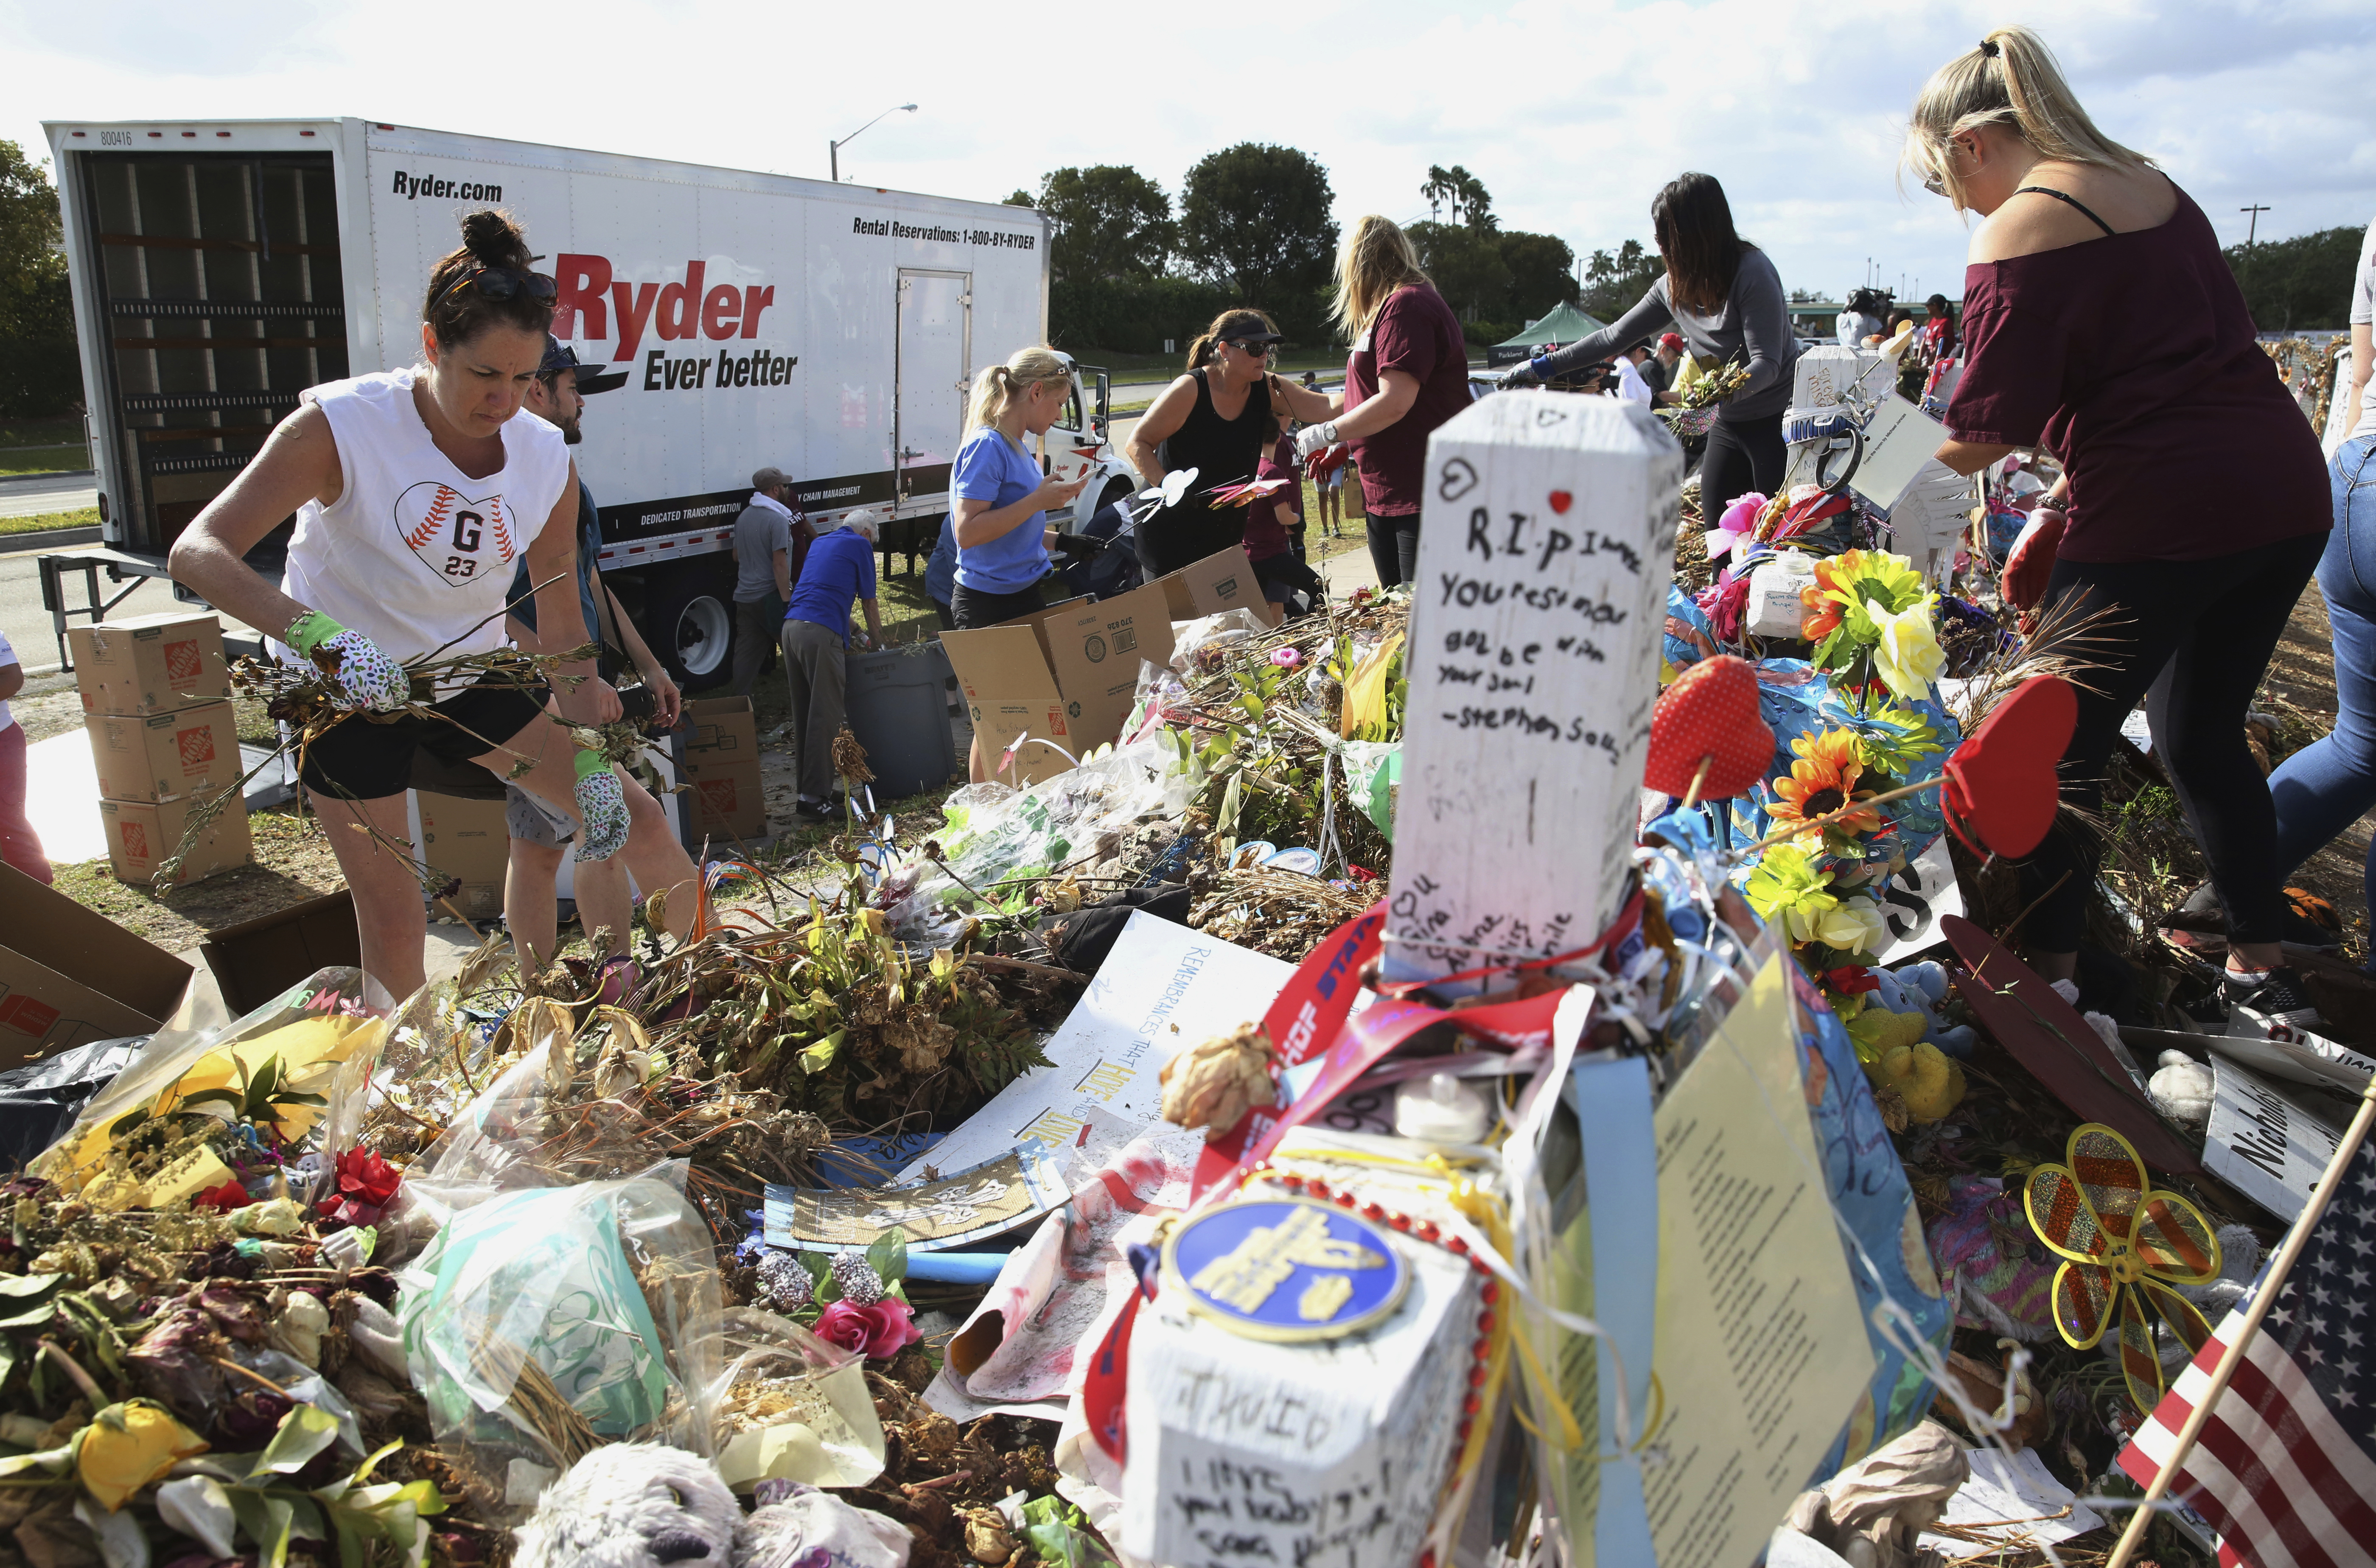 Volunteers, students and parents sort items left at the memorial site for the 17 students and faculty killed at Marjory Stoneman Douglas High School, March 28, 2018 in Parkland, Florida. Flowers and plants will be composted while all other items will...